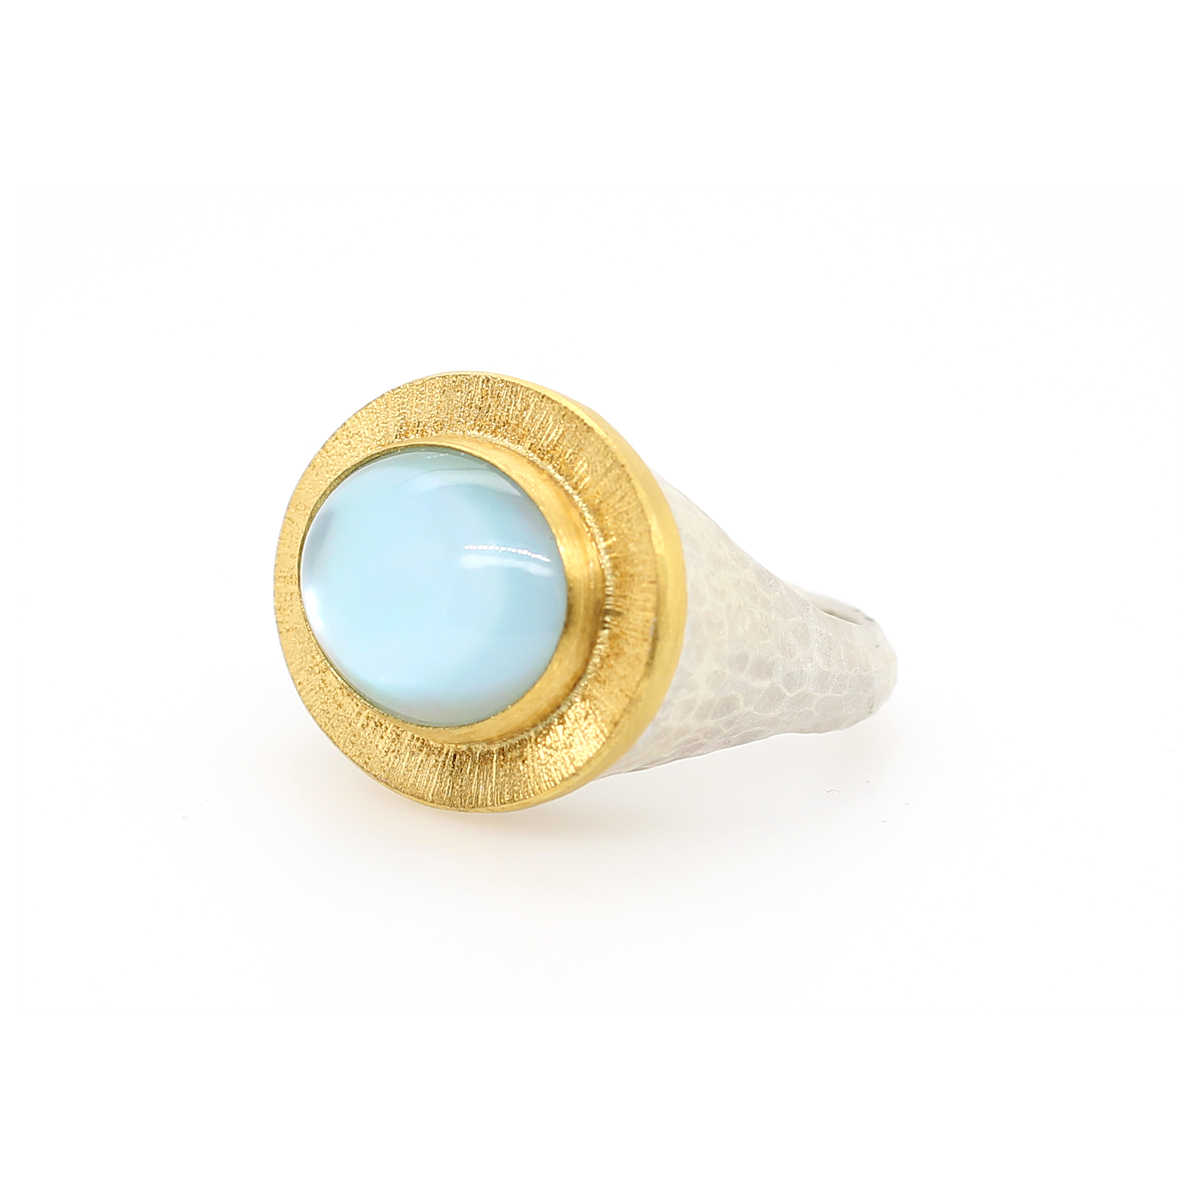 Lika Behar 24 Karat Yellow Gold and Sterling Silver Oval Blue Topaz Ring